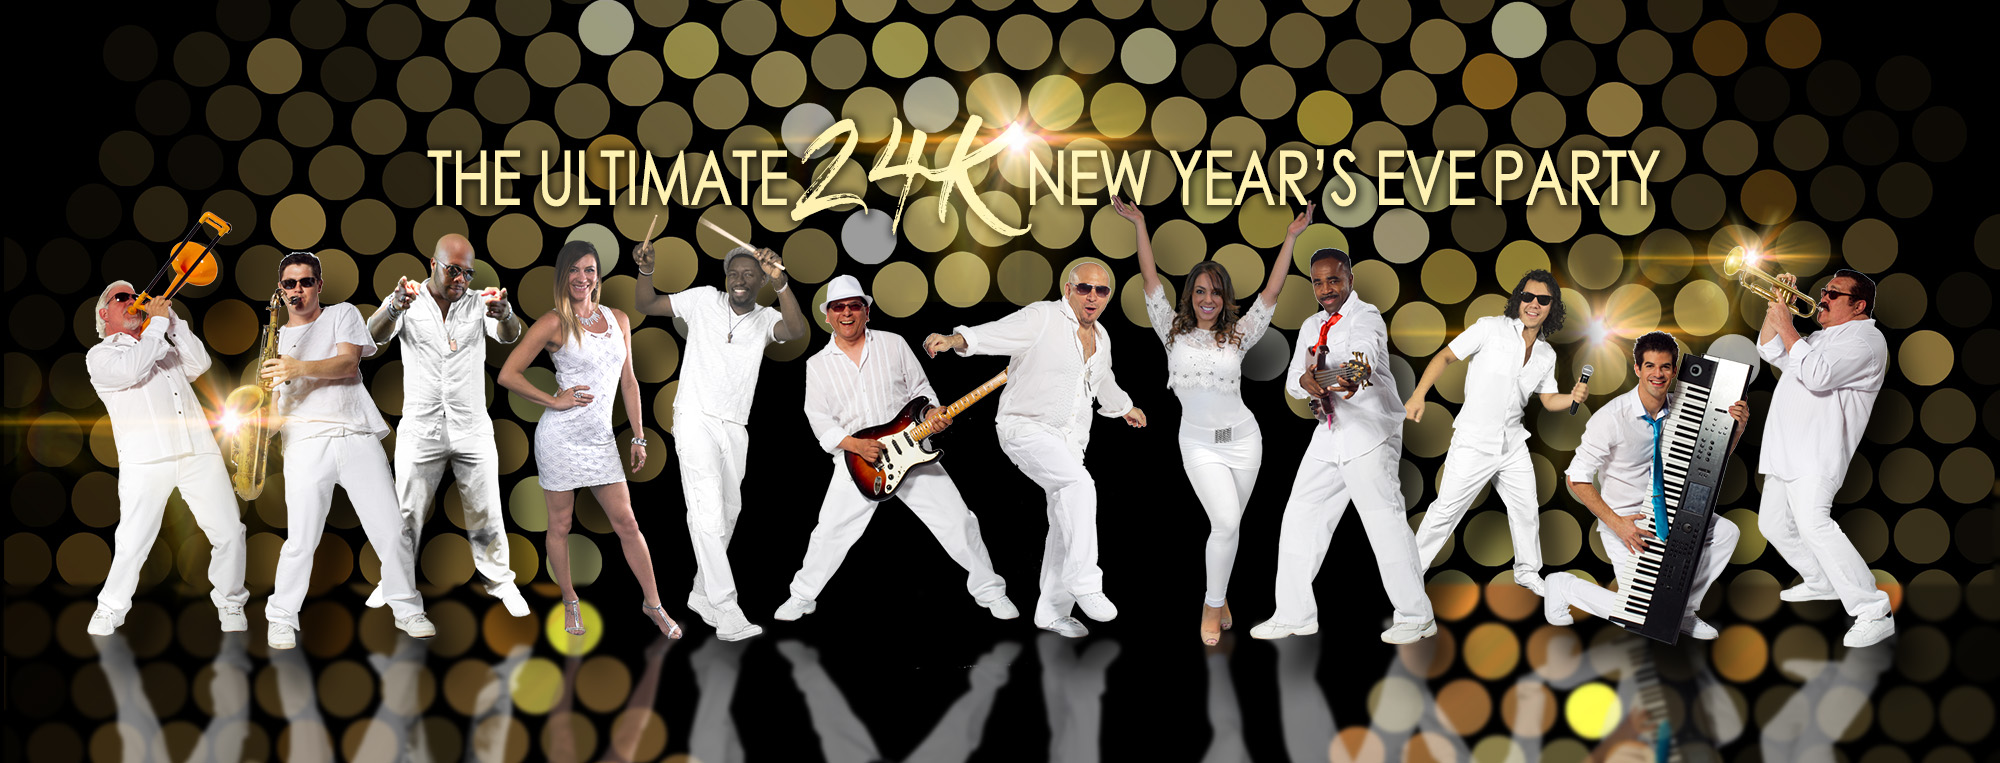 New Years Eve Dallas - Rock The '18 NYE Party Dallas - Emerald City Band